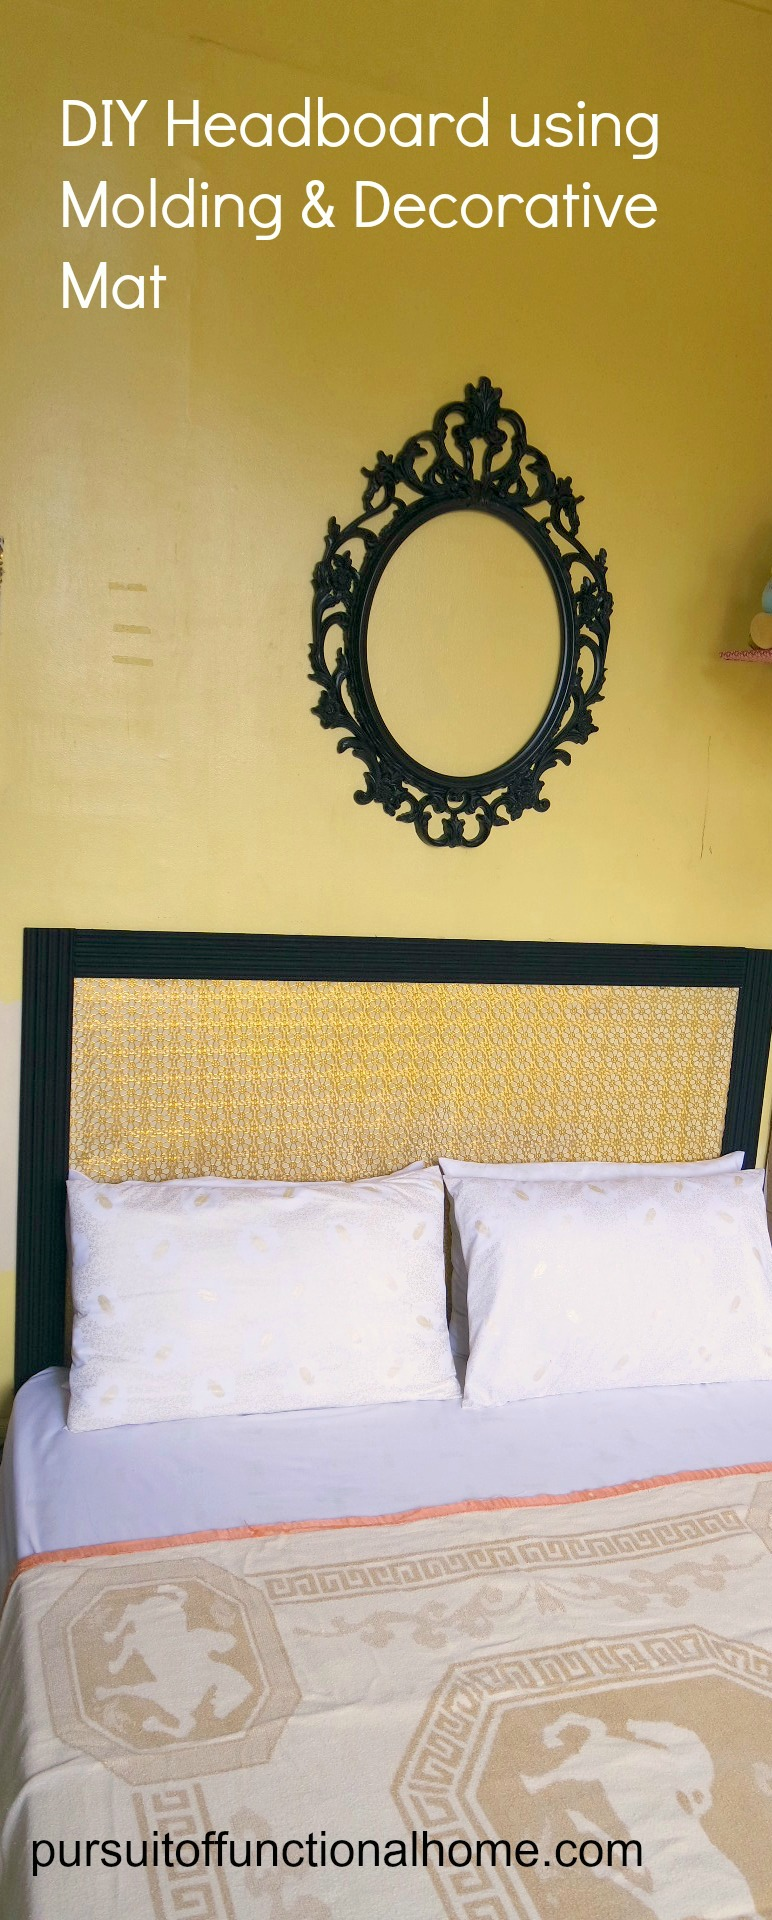 HOW TO MAKE A HEADBOARD, HEADBOARD USING MOLDING WITH flower DECORATIVE MAT